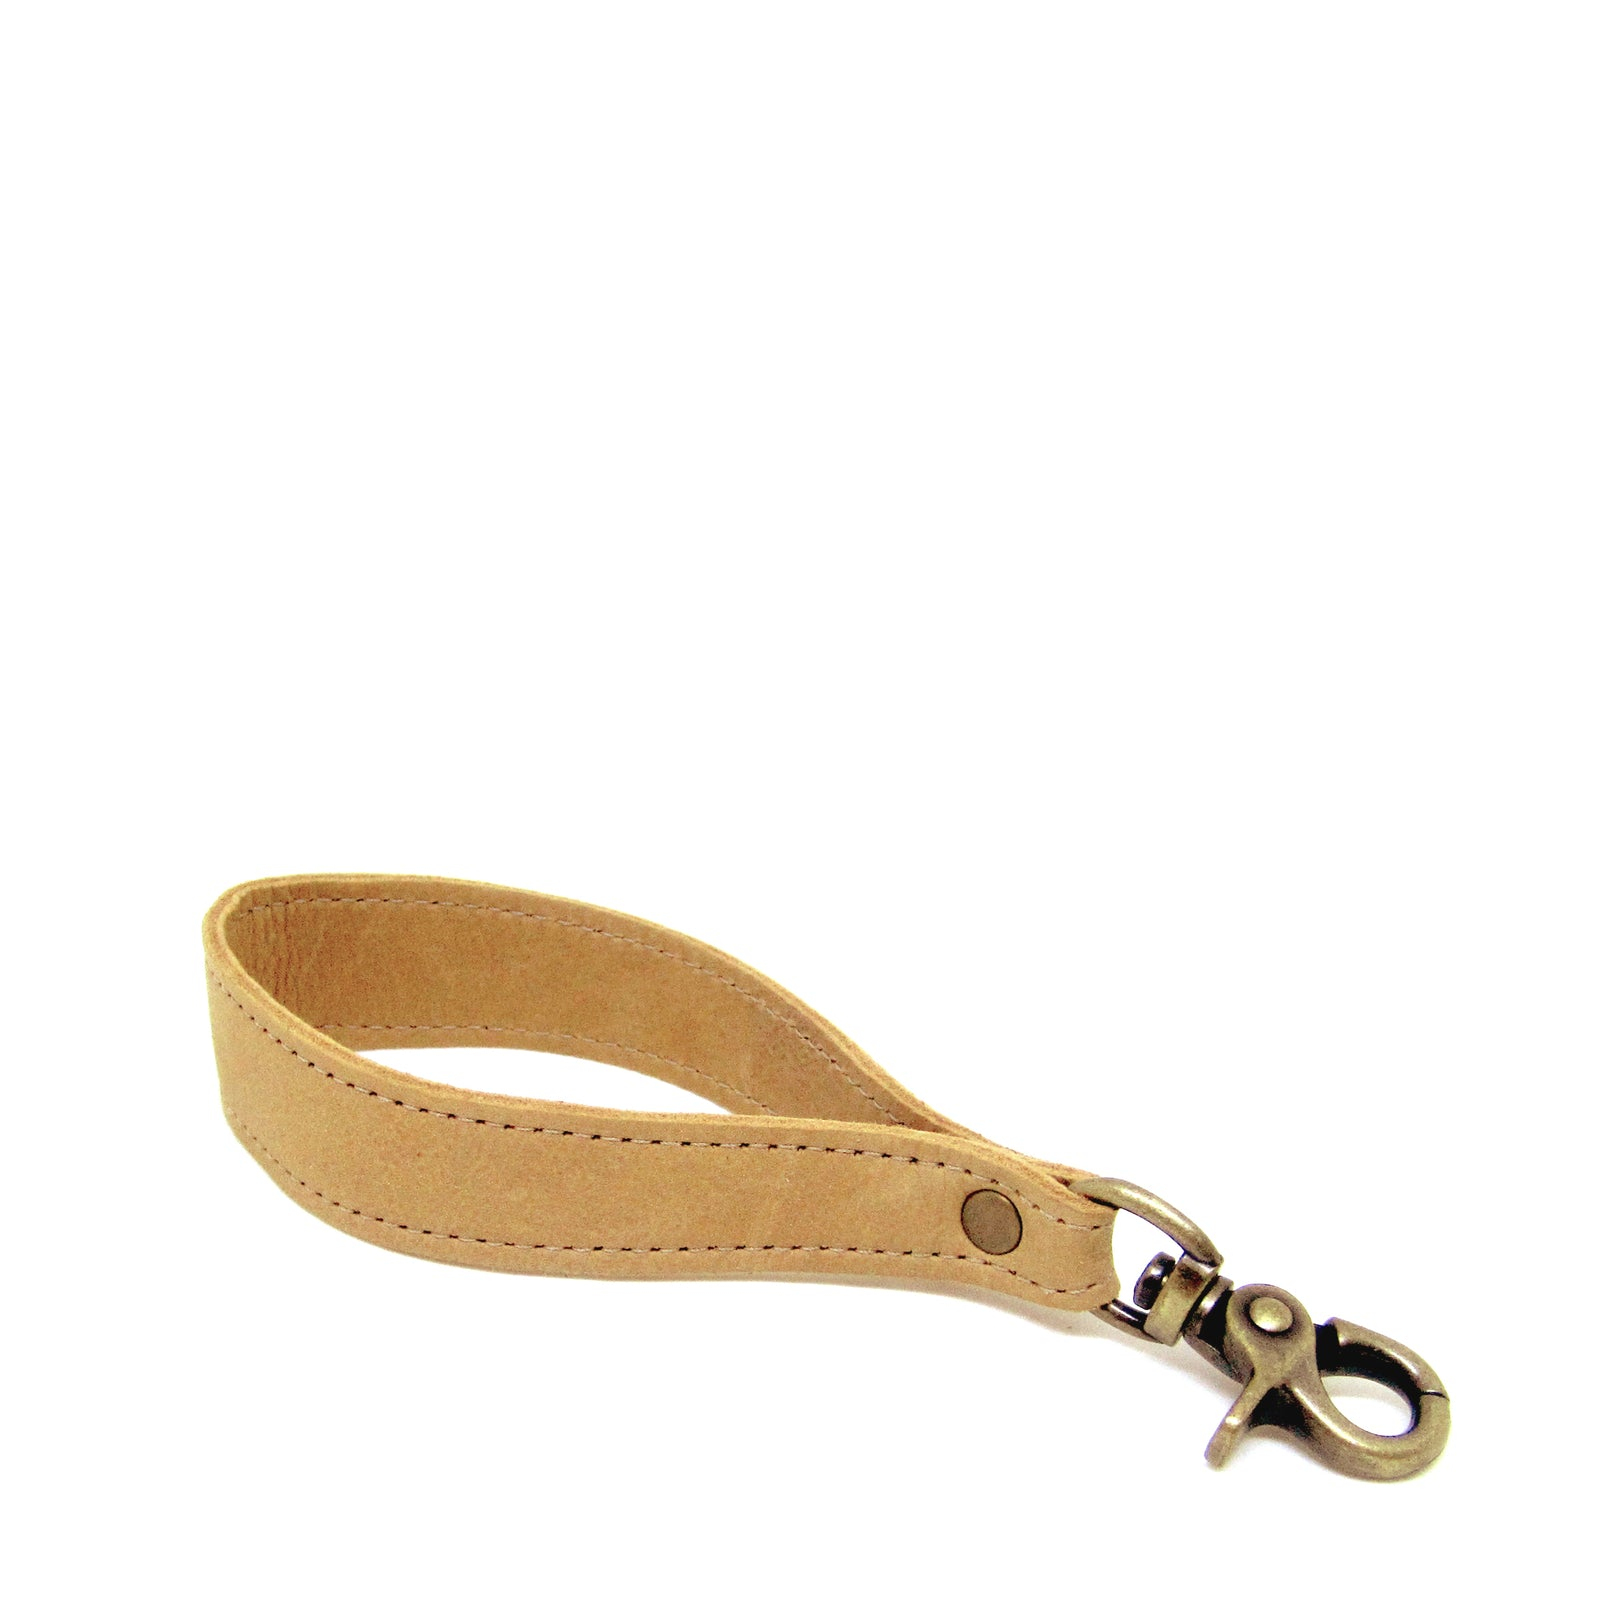 Tommy wrist strap - Gold Dust